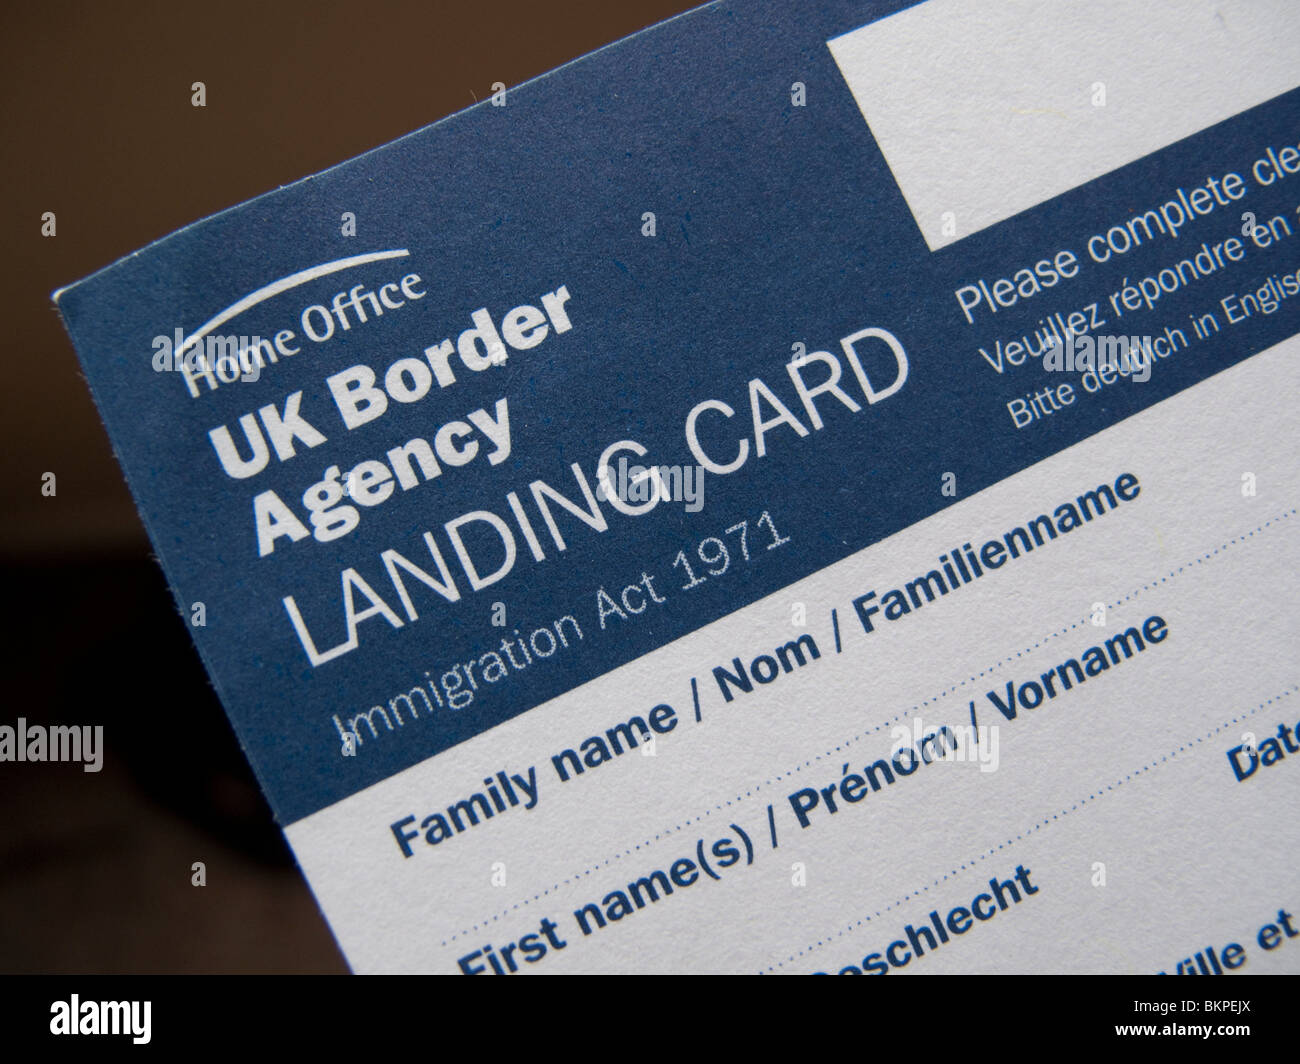 UK Border Agency Landing Card - Stock Image